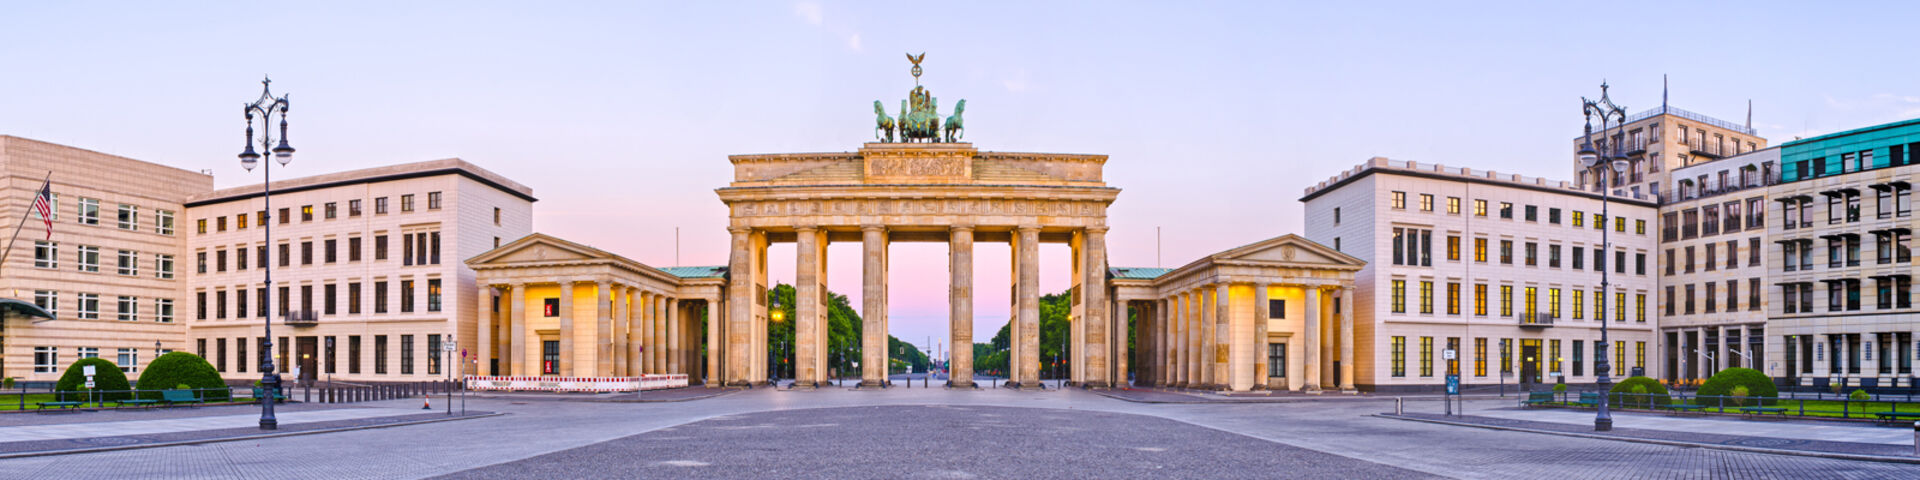 14 Locations in Germany